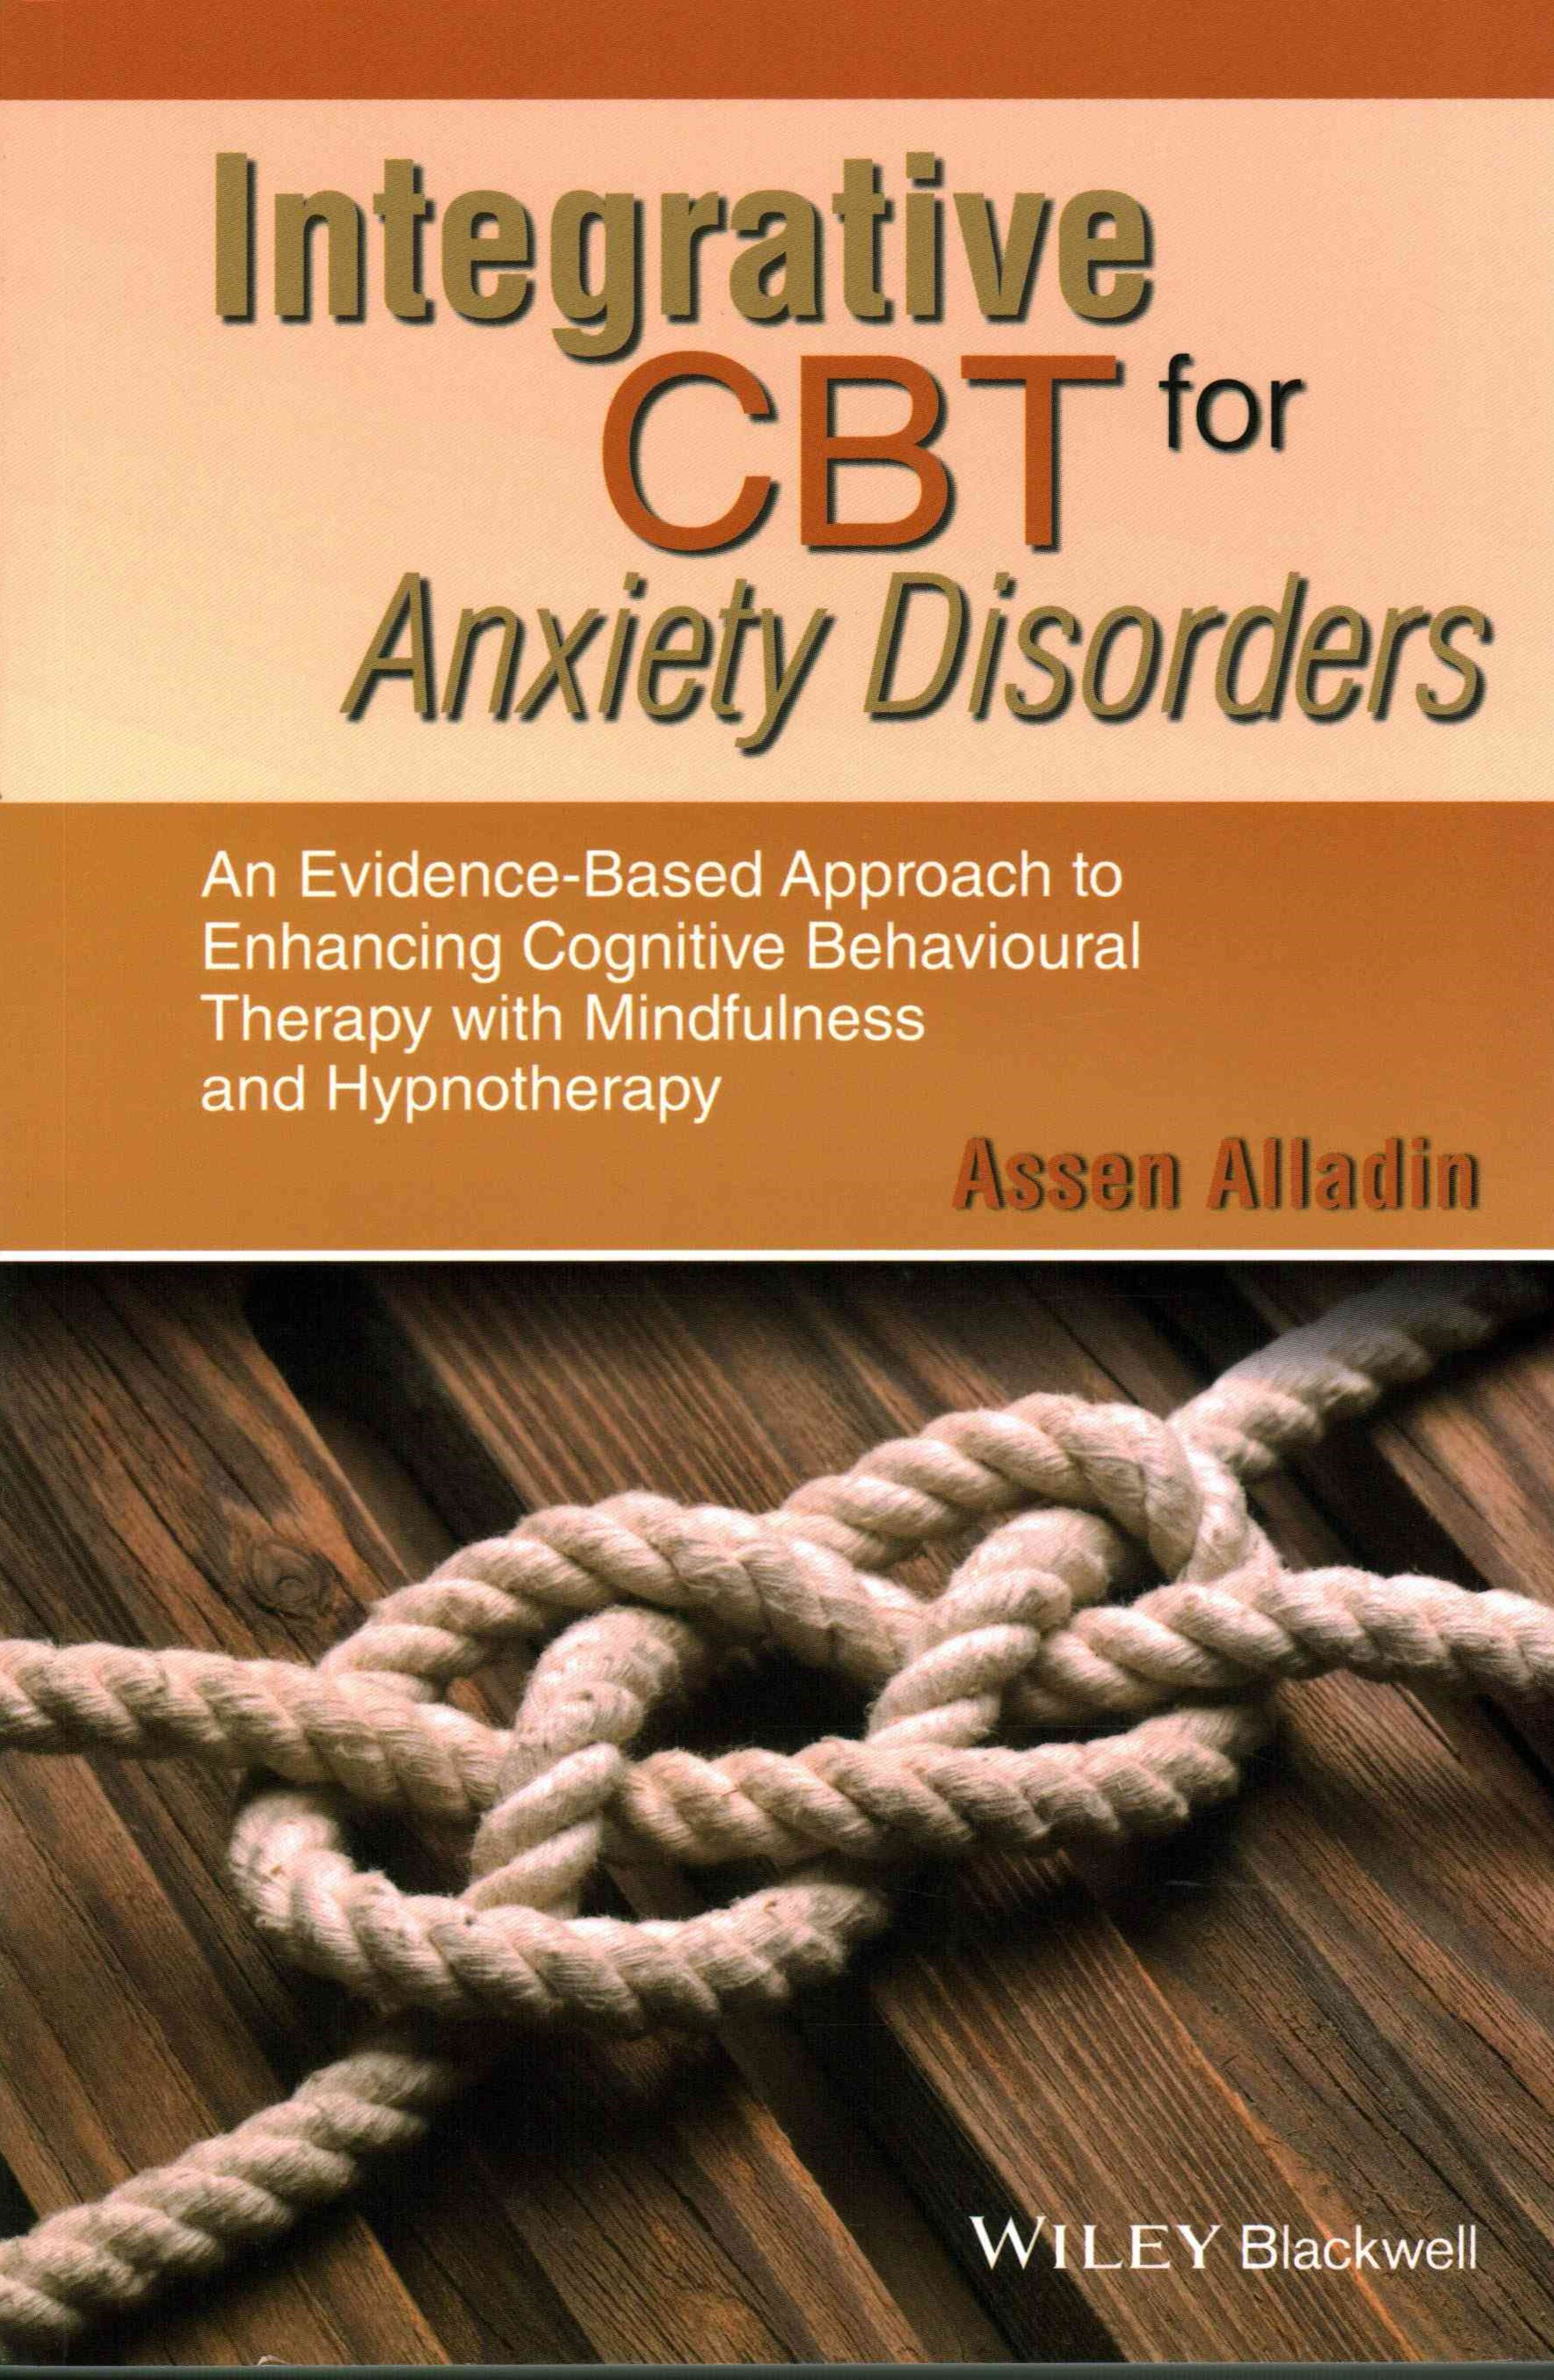 Integrative Cbt for Anxiety Disorders - an        Evidence-based Approach to Enhancing Cbt with